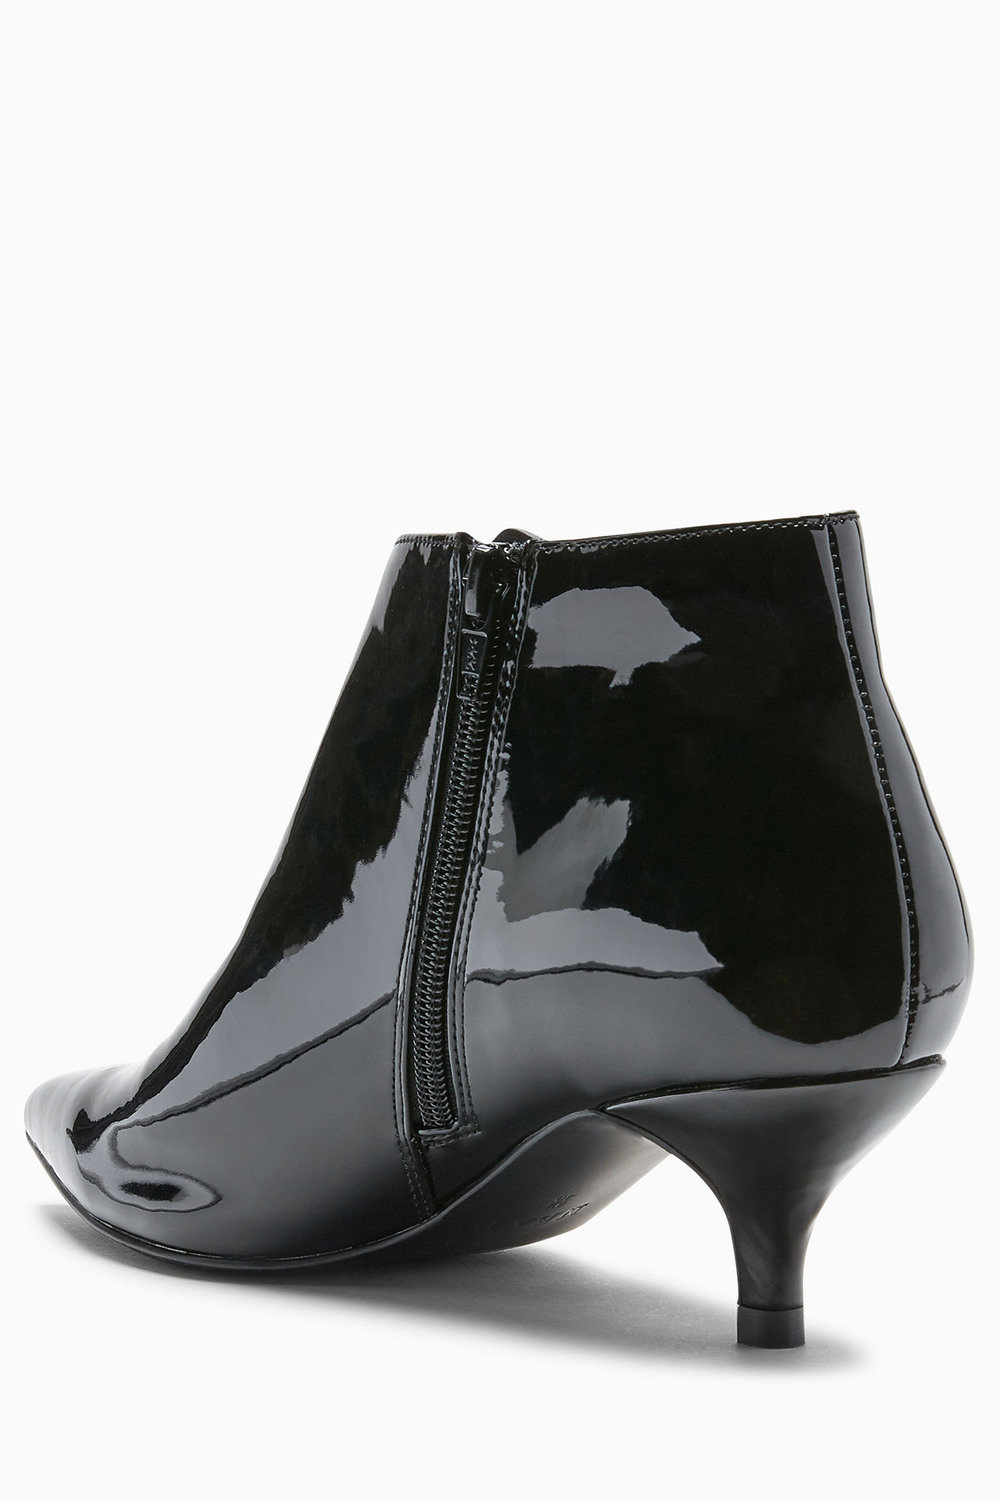 6c221ff8739 Next Kitten Heel Ankle Boots